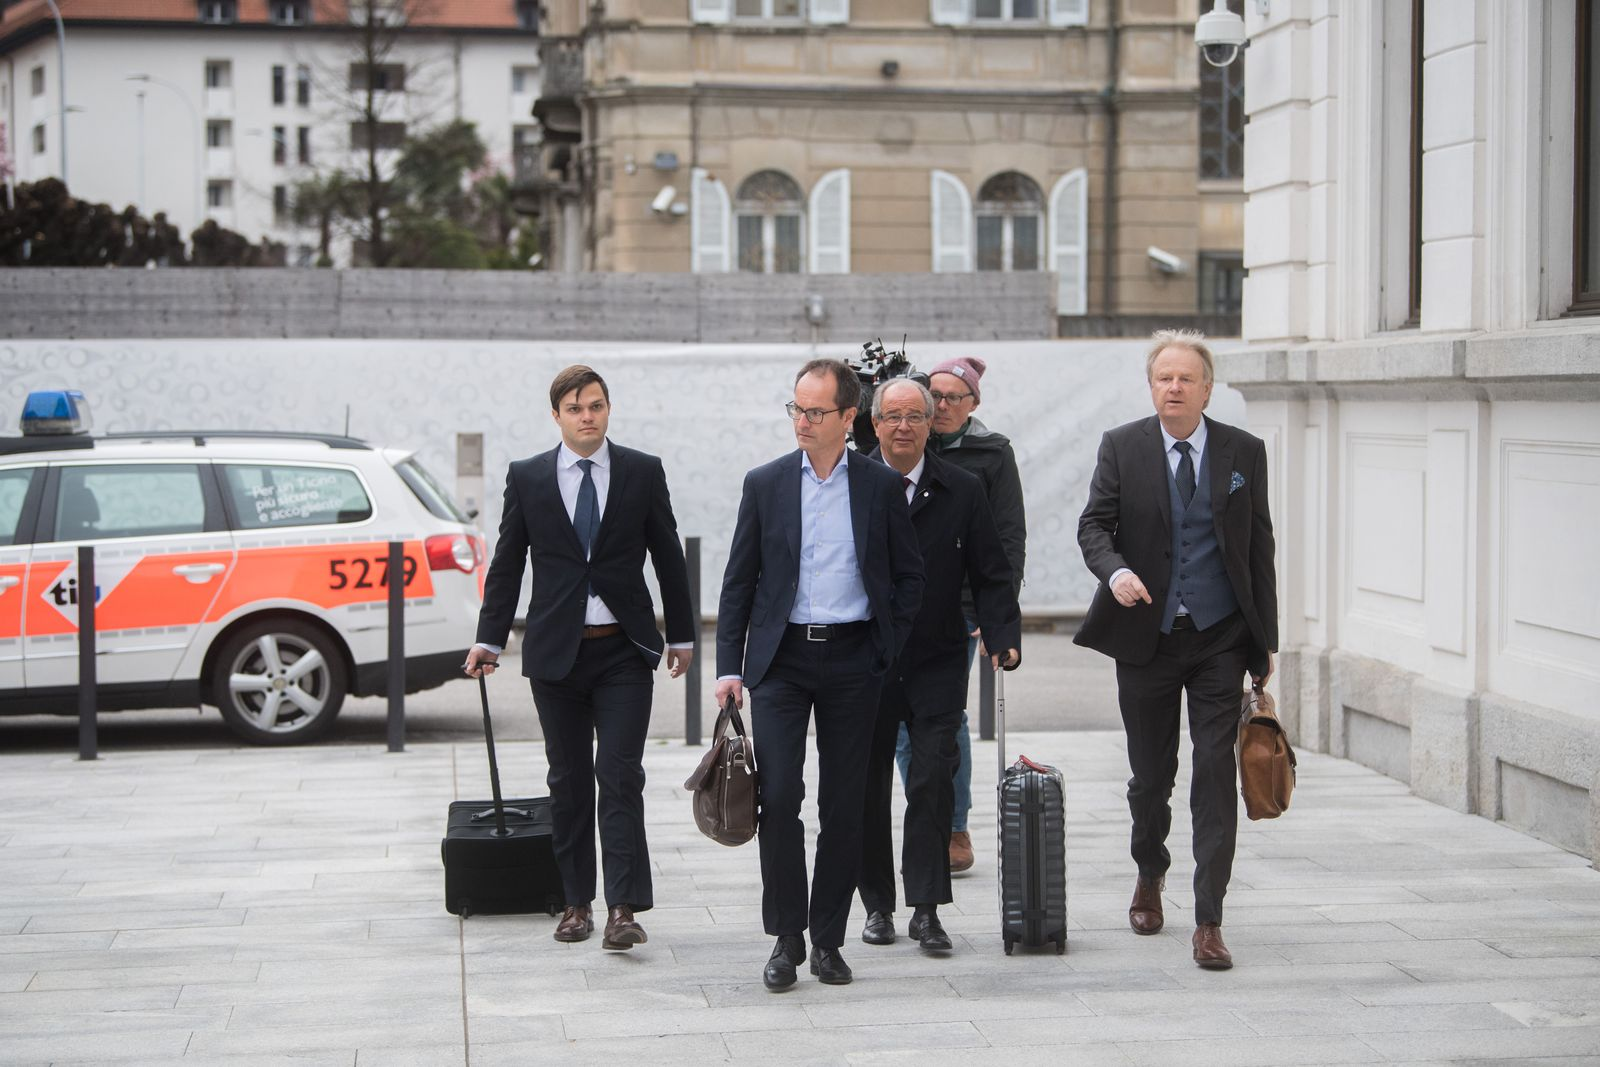 Ex-FIFA head Linsi arrives for trial in Switzerland over World Cup bribery accusations, Bellinzona - 09 Mar 2020